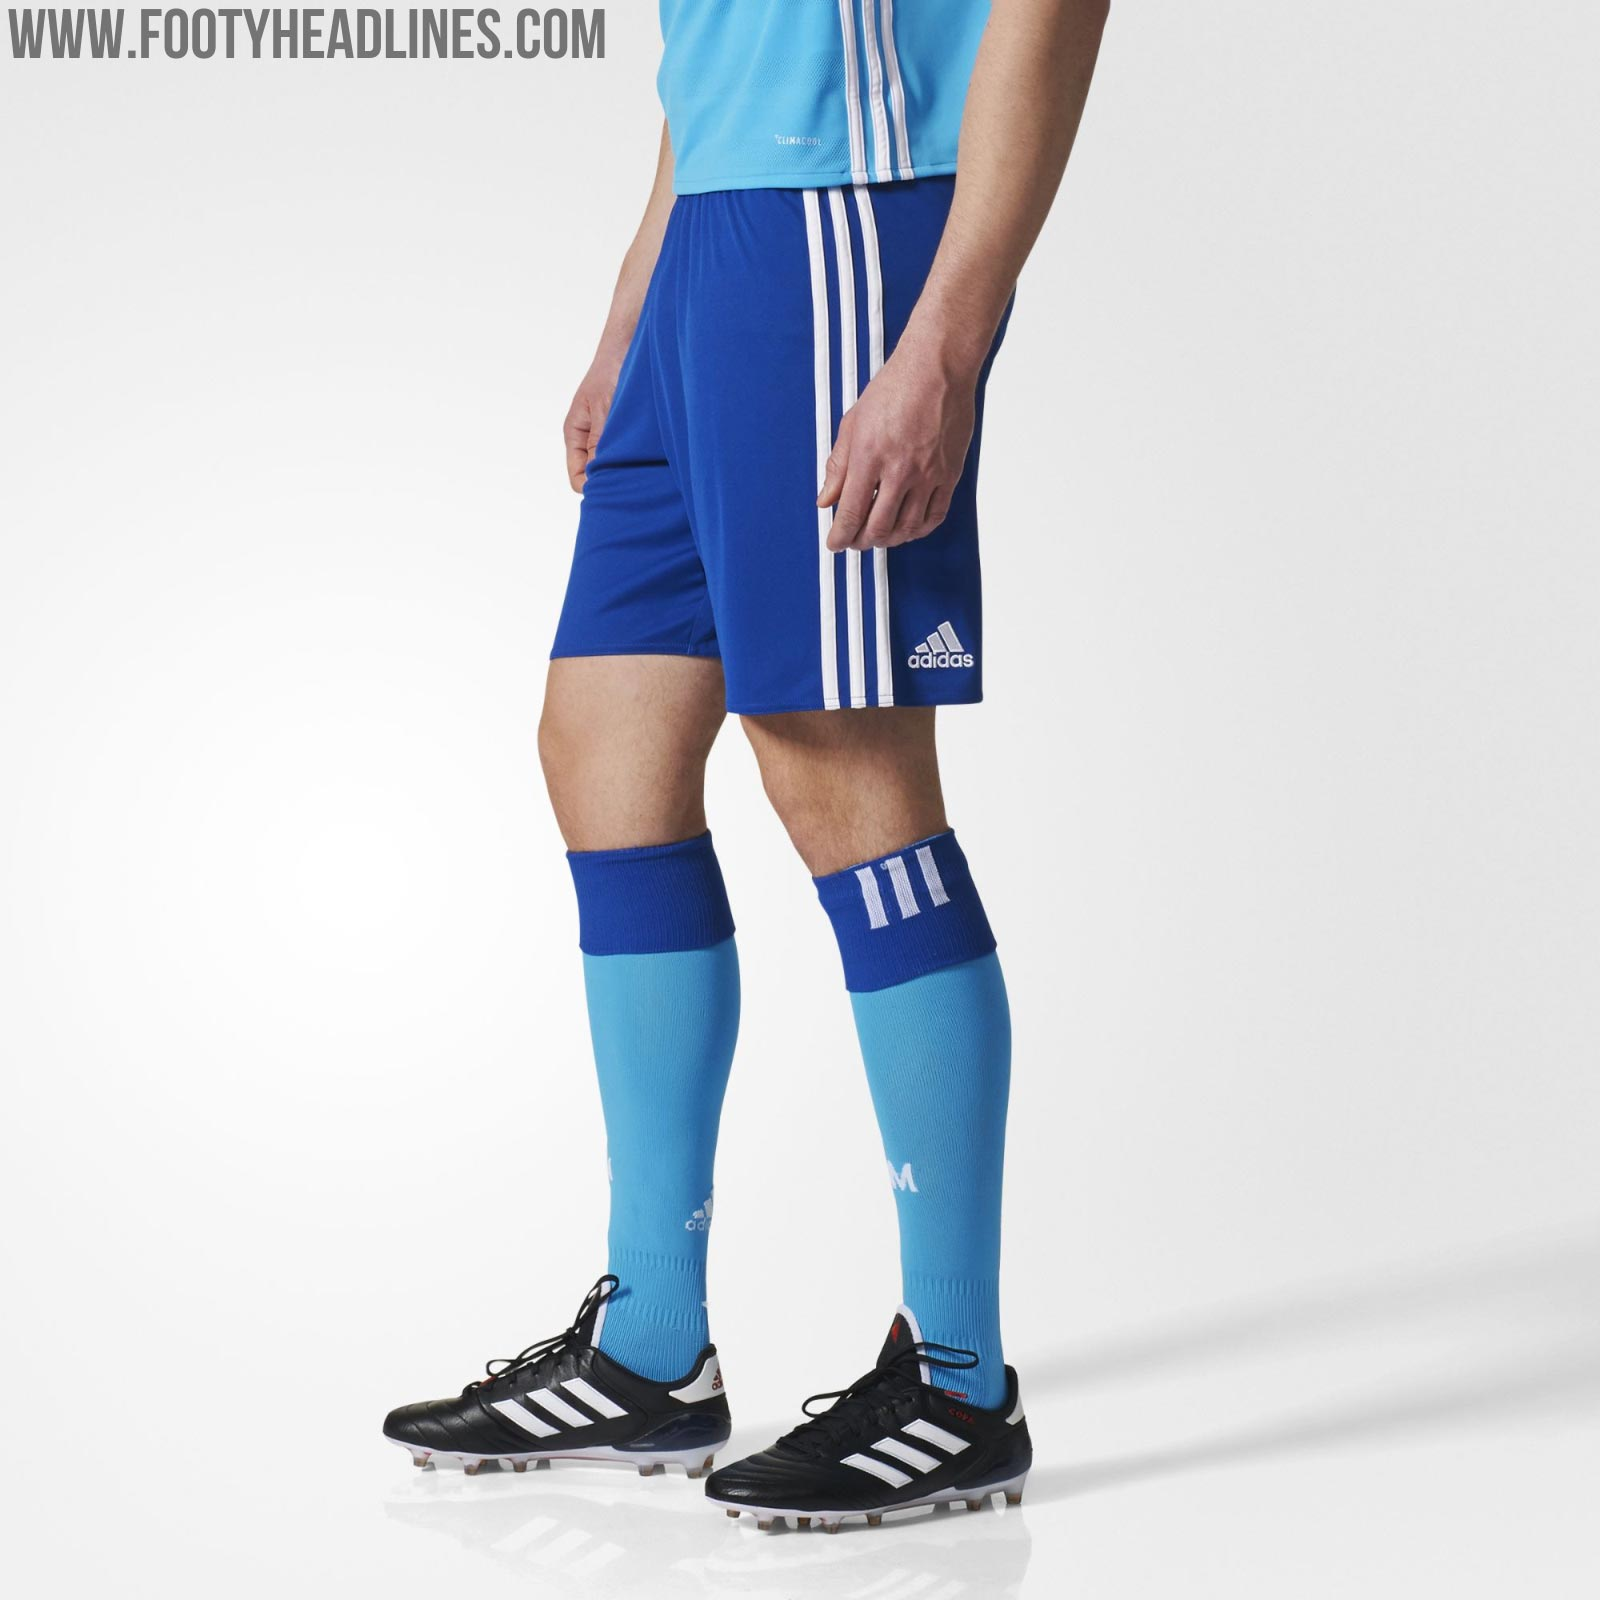 https://image.ibb.co/jJJnda/Olympique_Marseille_away_kit_4.jpg